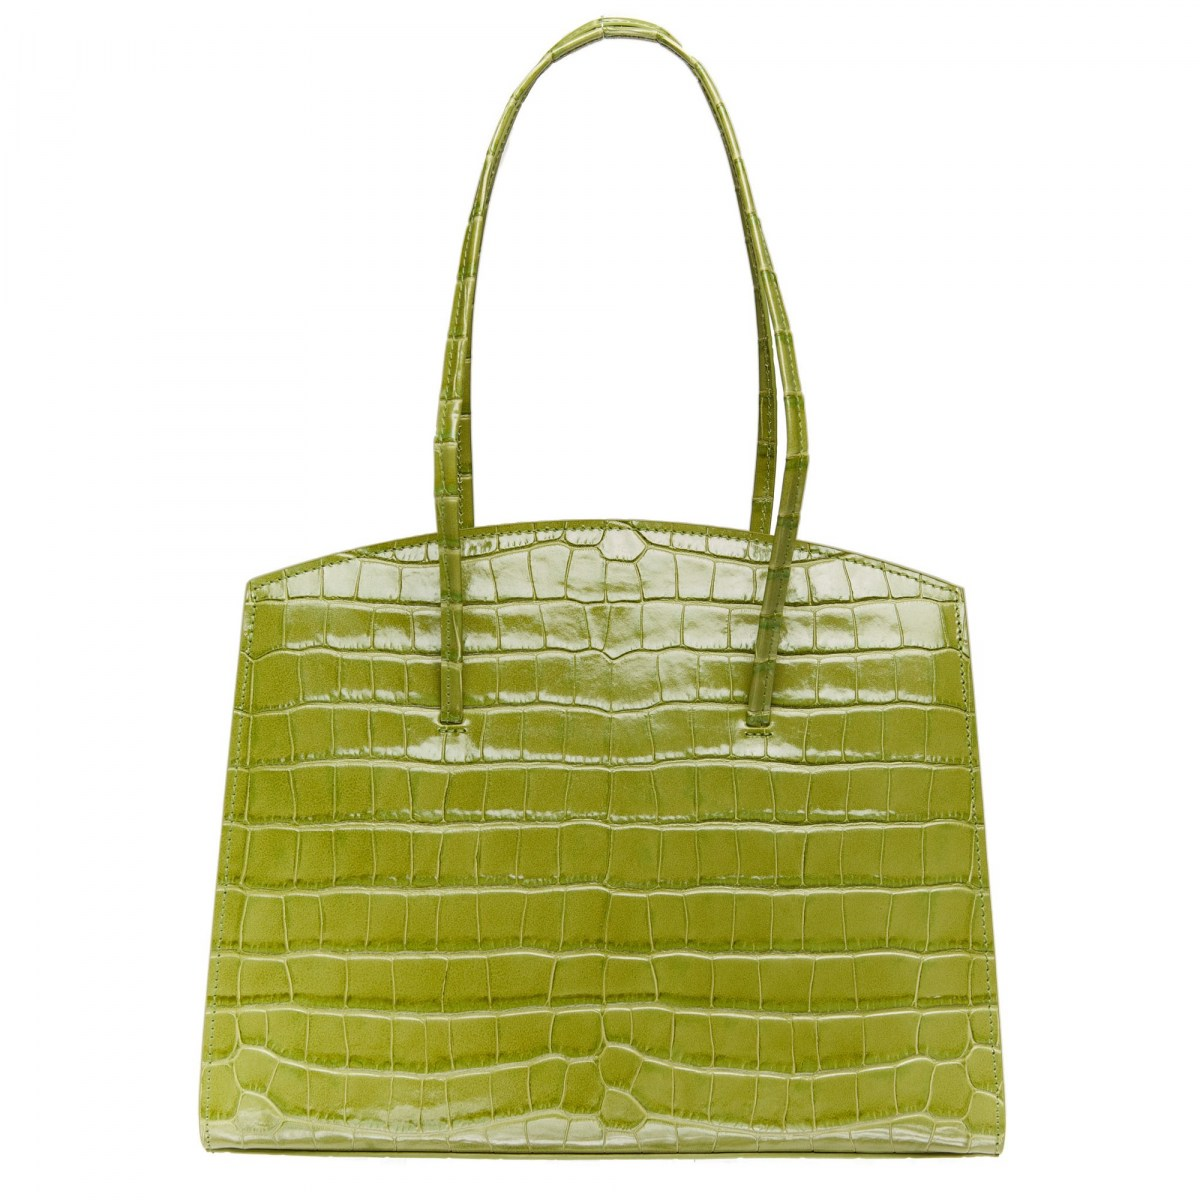 LIFFNER MINIMAL TOTE by LITTLE LIFFNER, available on josephstores.com for $460 Kendall Jenner Bags Exact Product